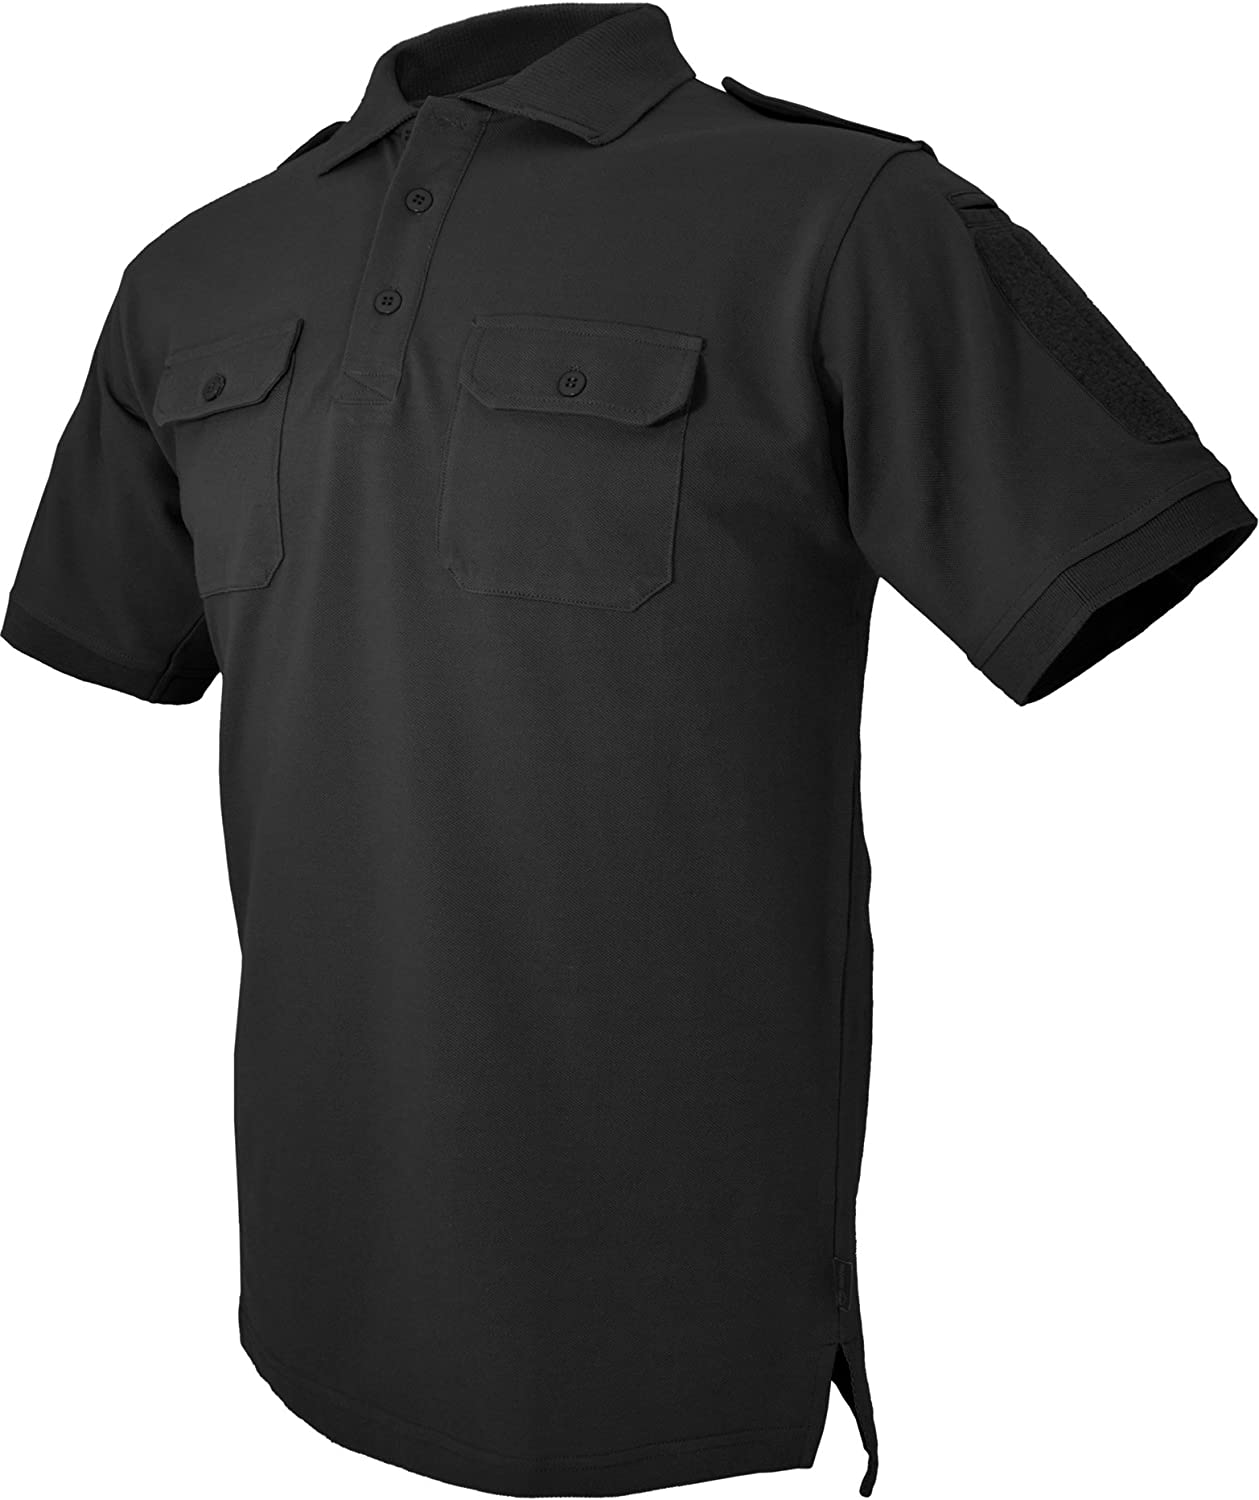 HAZARD 4 Quickdry Leo Battle Polo Arm-Patch Denver Mall C Tactical specialty shop TM Areas